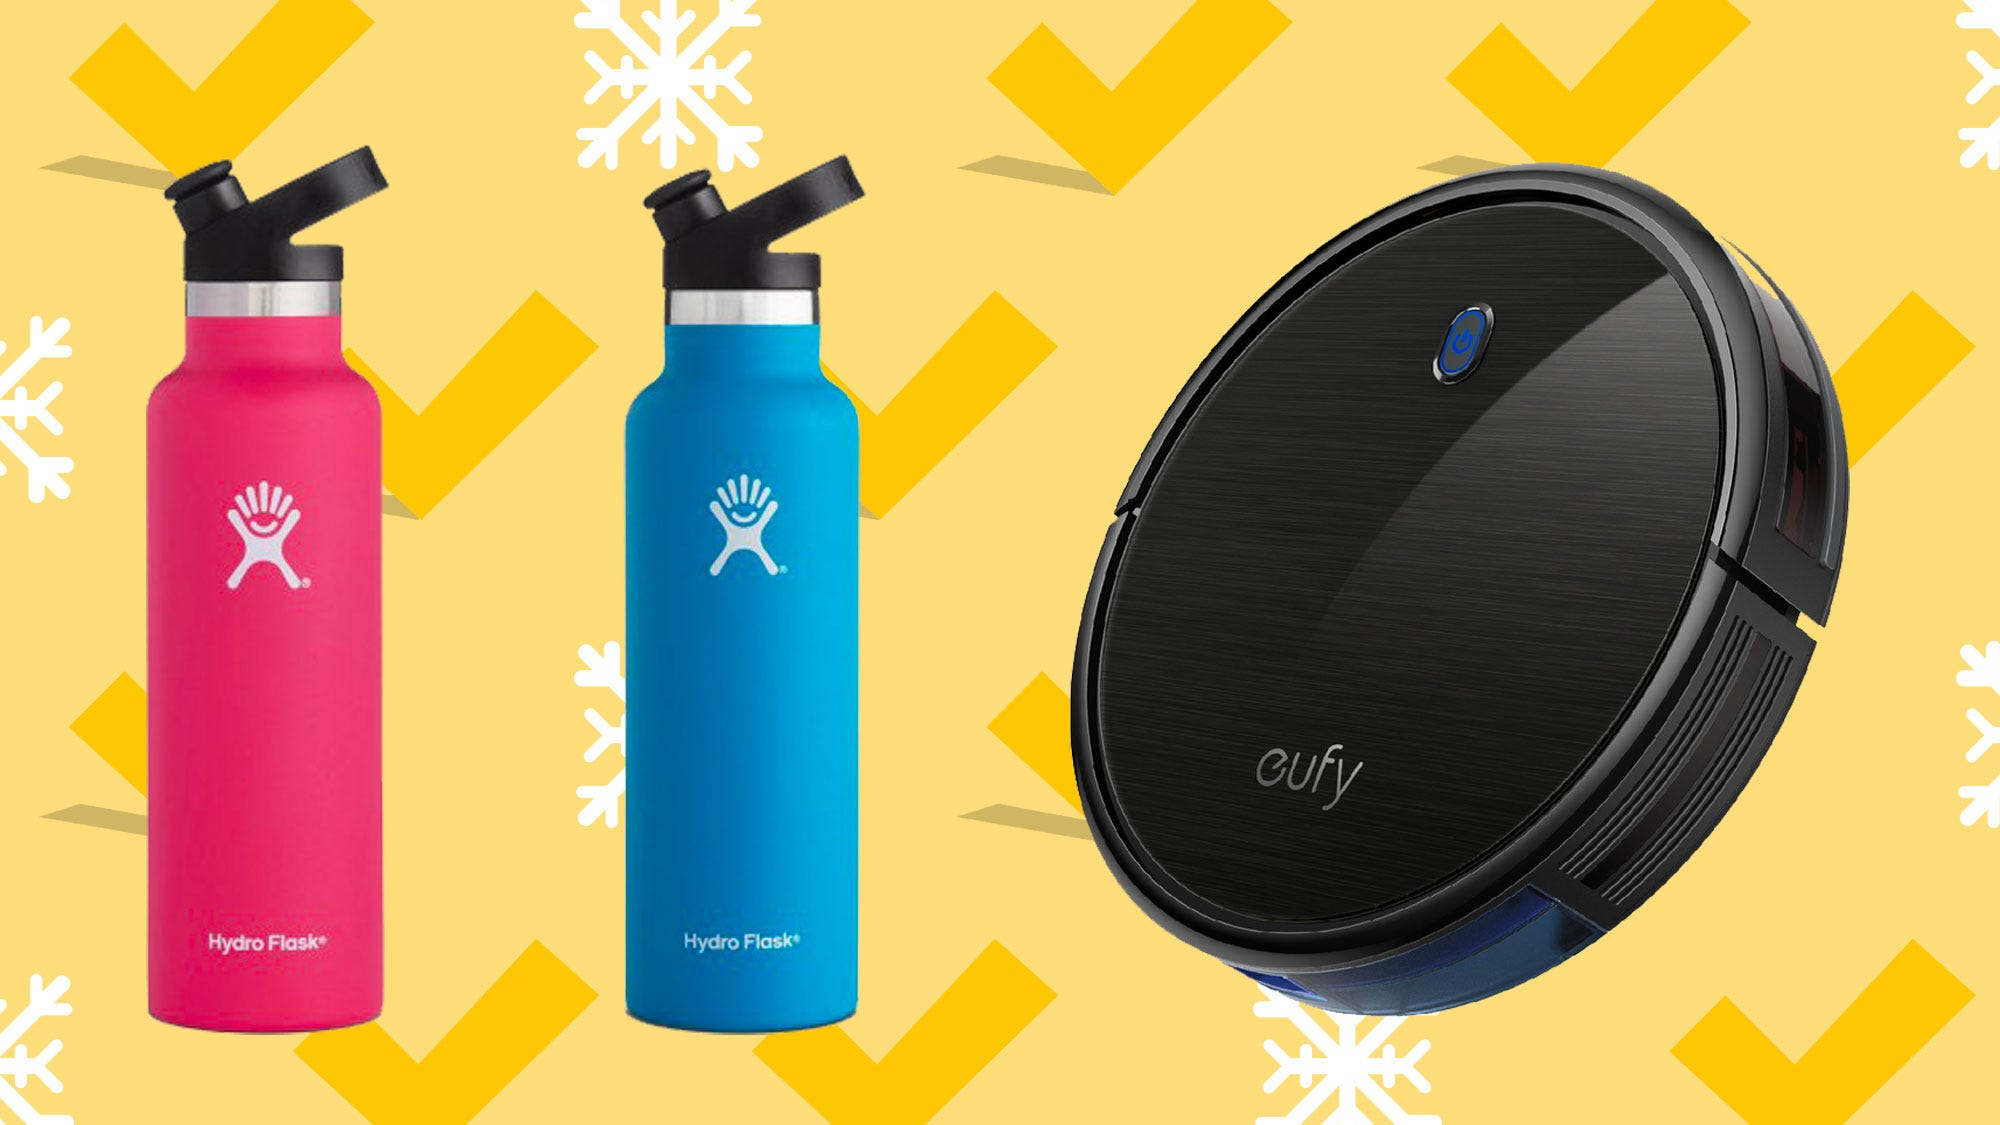 The 5 best Amazon deals you can get this Thursday